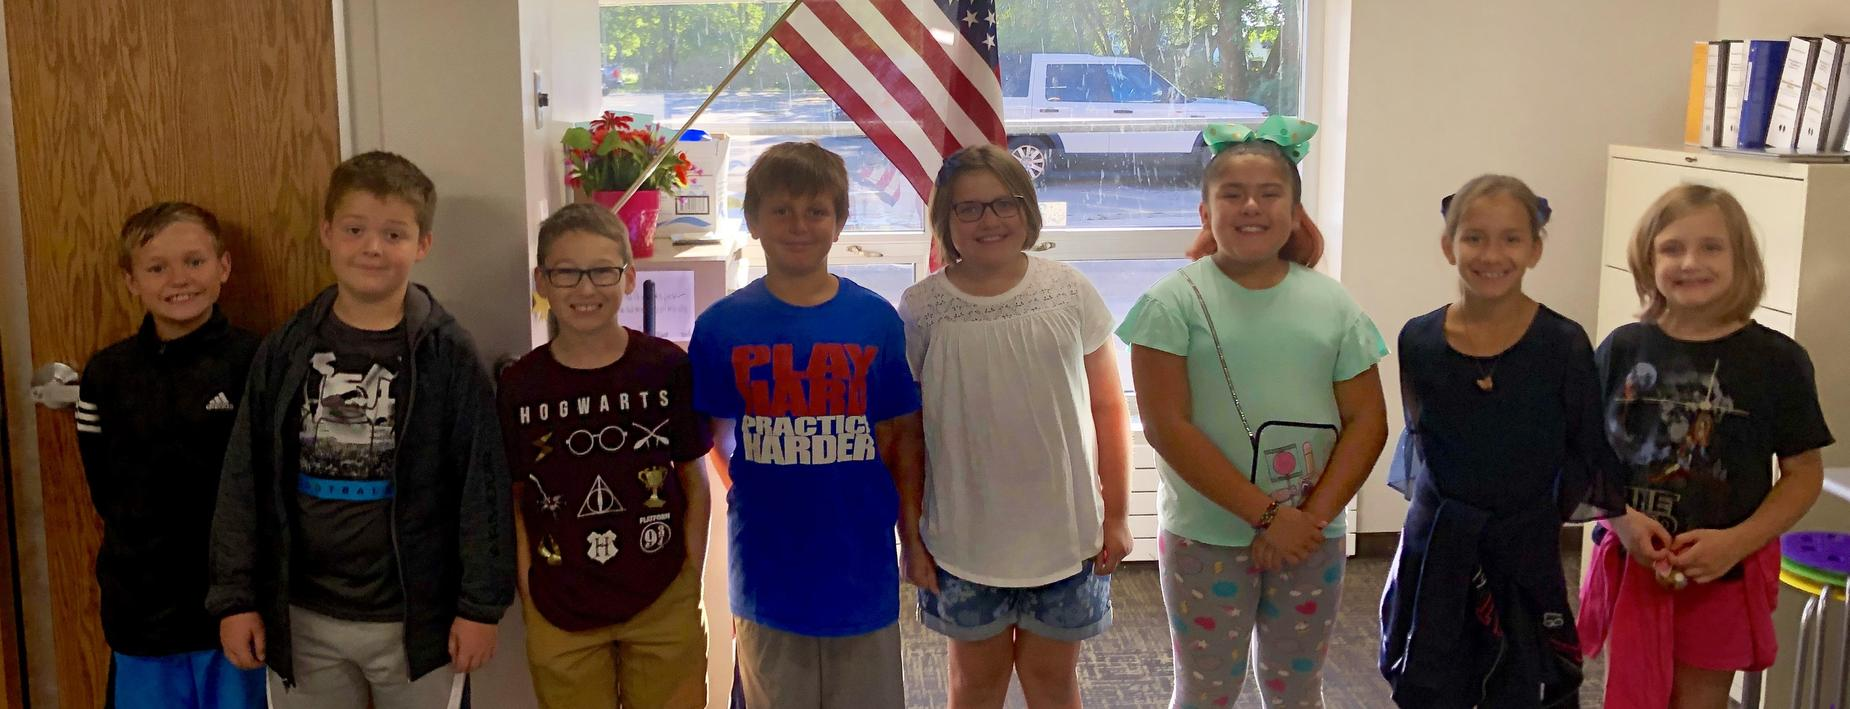 CCIS honoring the flag